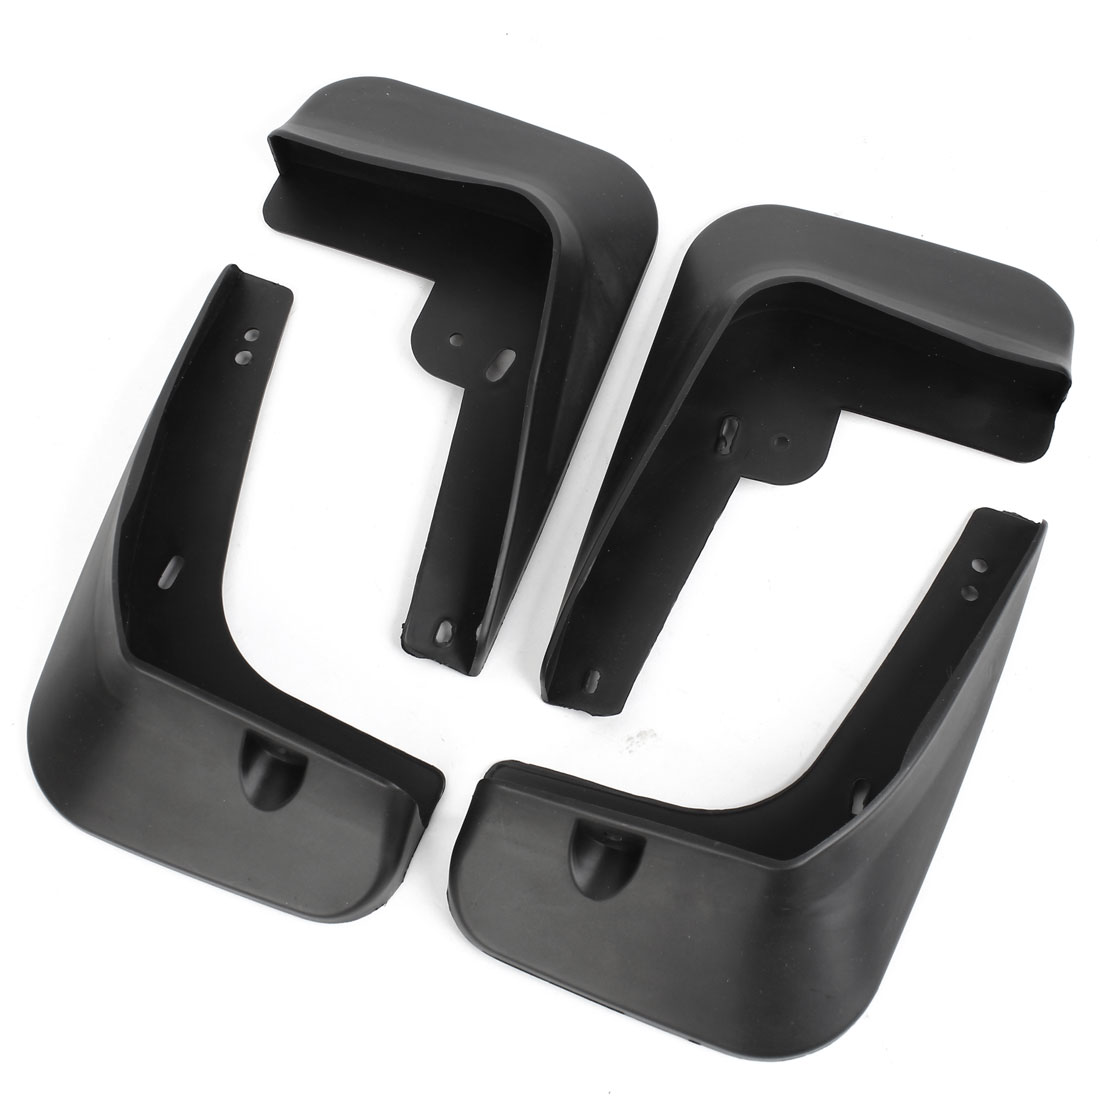 Unique Bargains 4PCS Front Rear Splash Guards Plastic Mud Flaps Set for Hyundai Sonata 2011